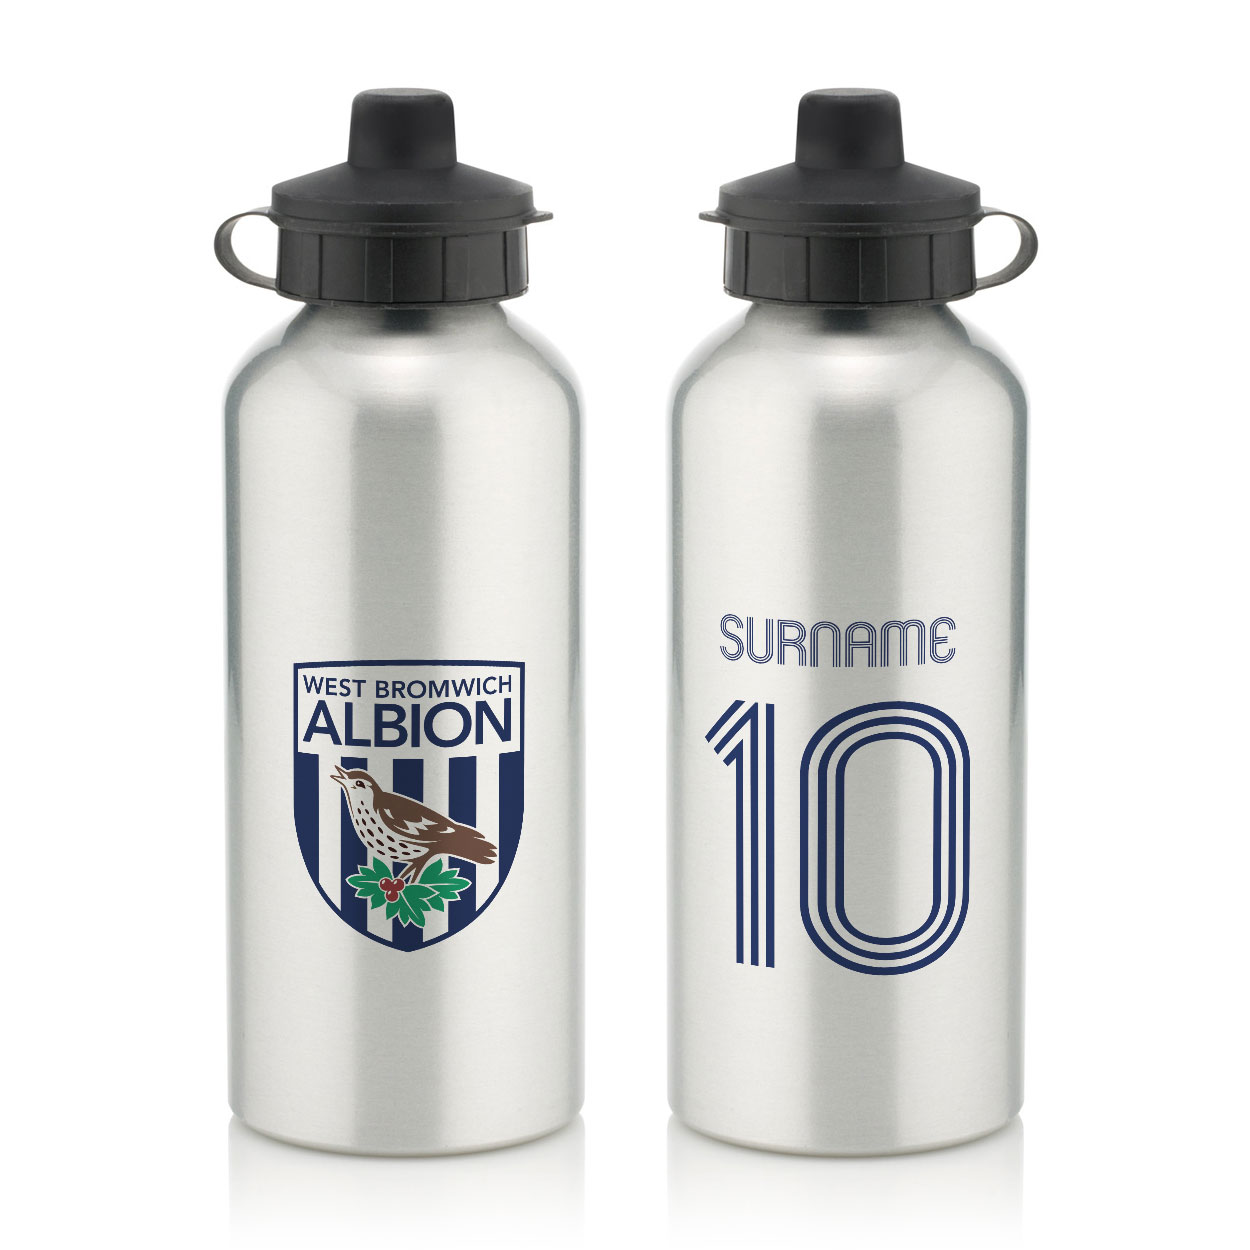 West Bromwich Albion FC Retro Shirt Water Bottle